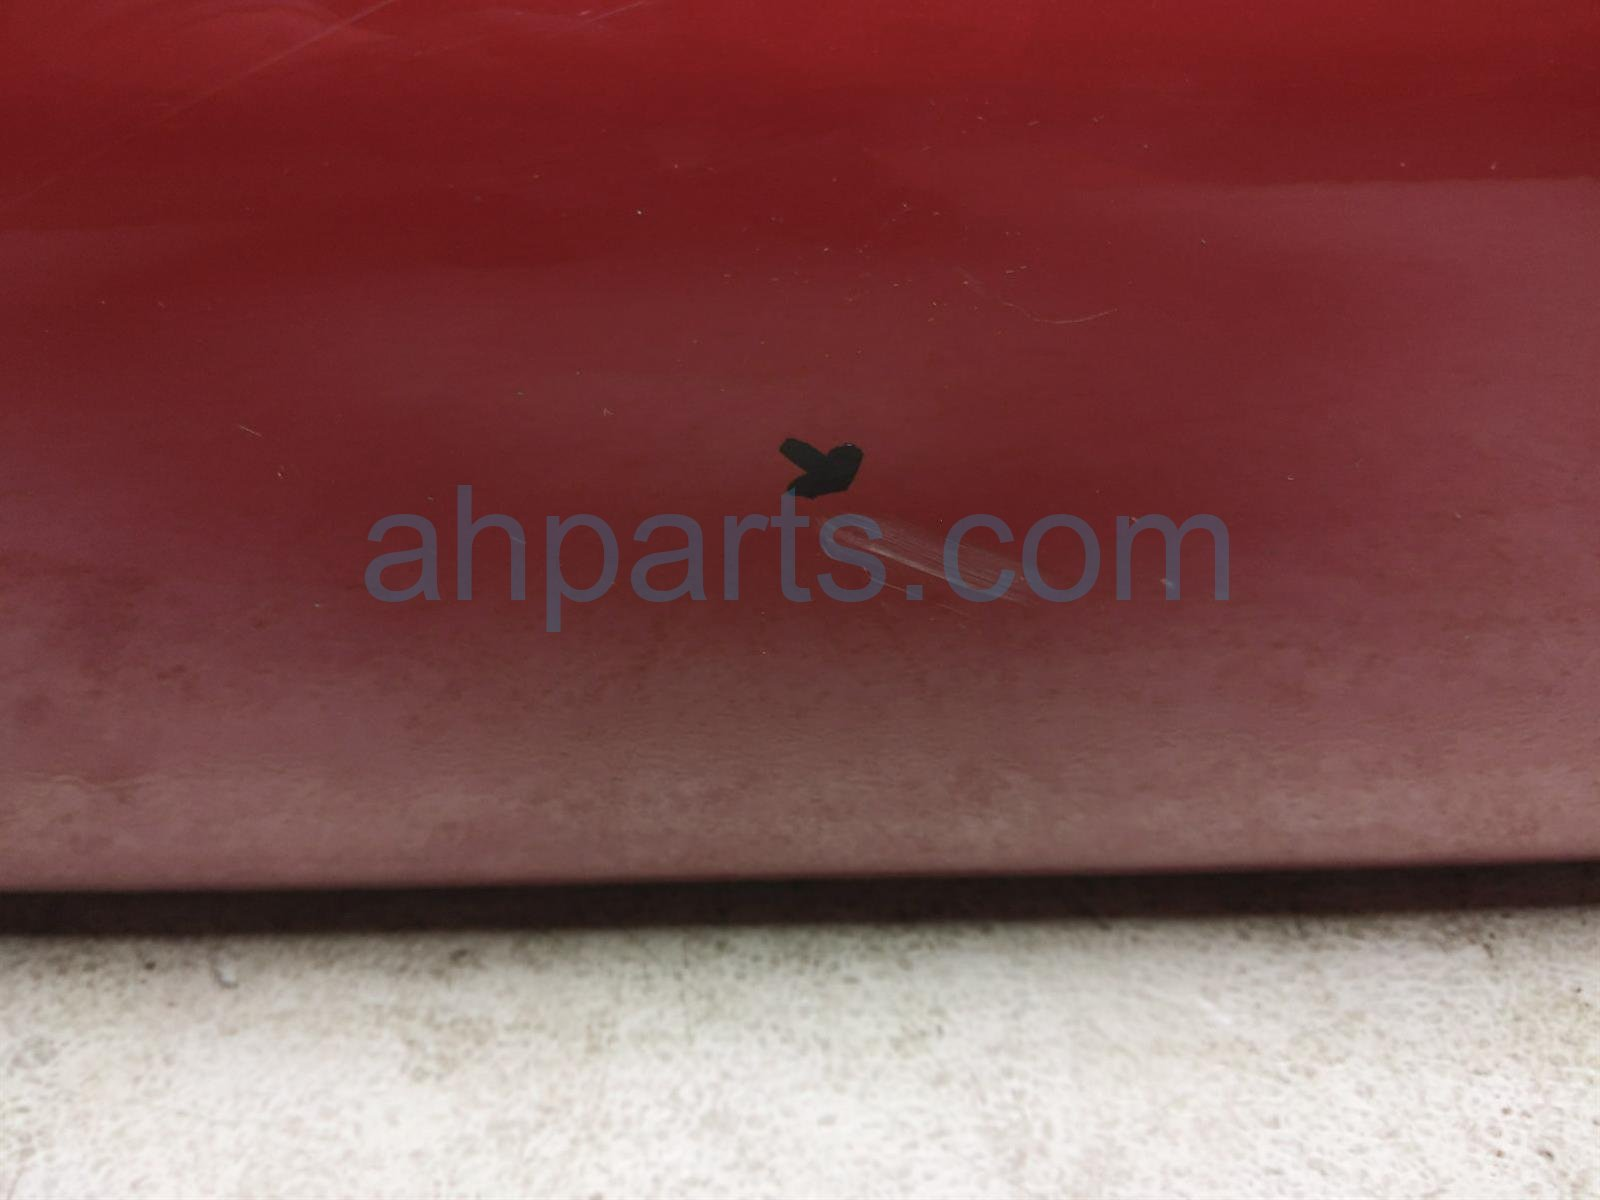 2017 Toyota Tacoma Front Passenger Door   Red   No Mirror/panel 67001 04210 Replacement